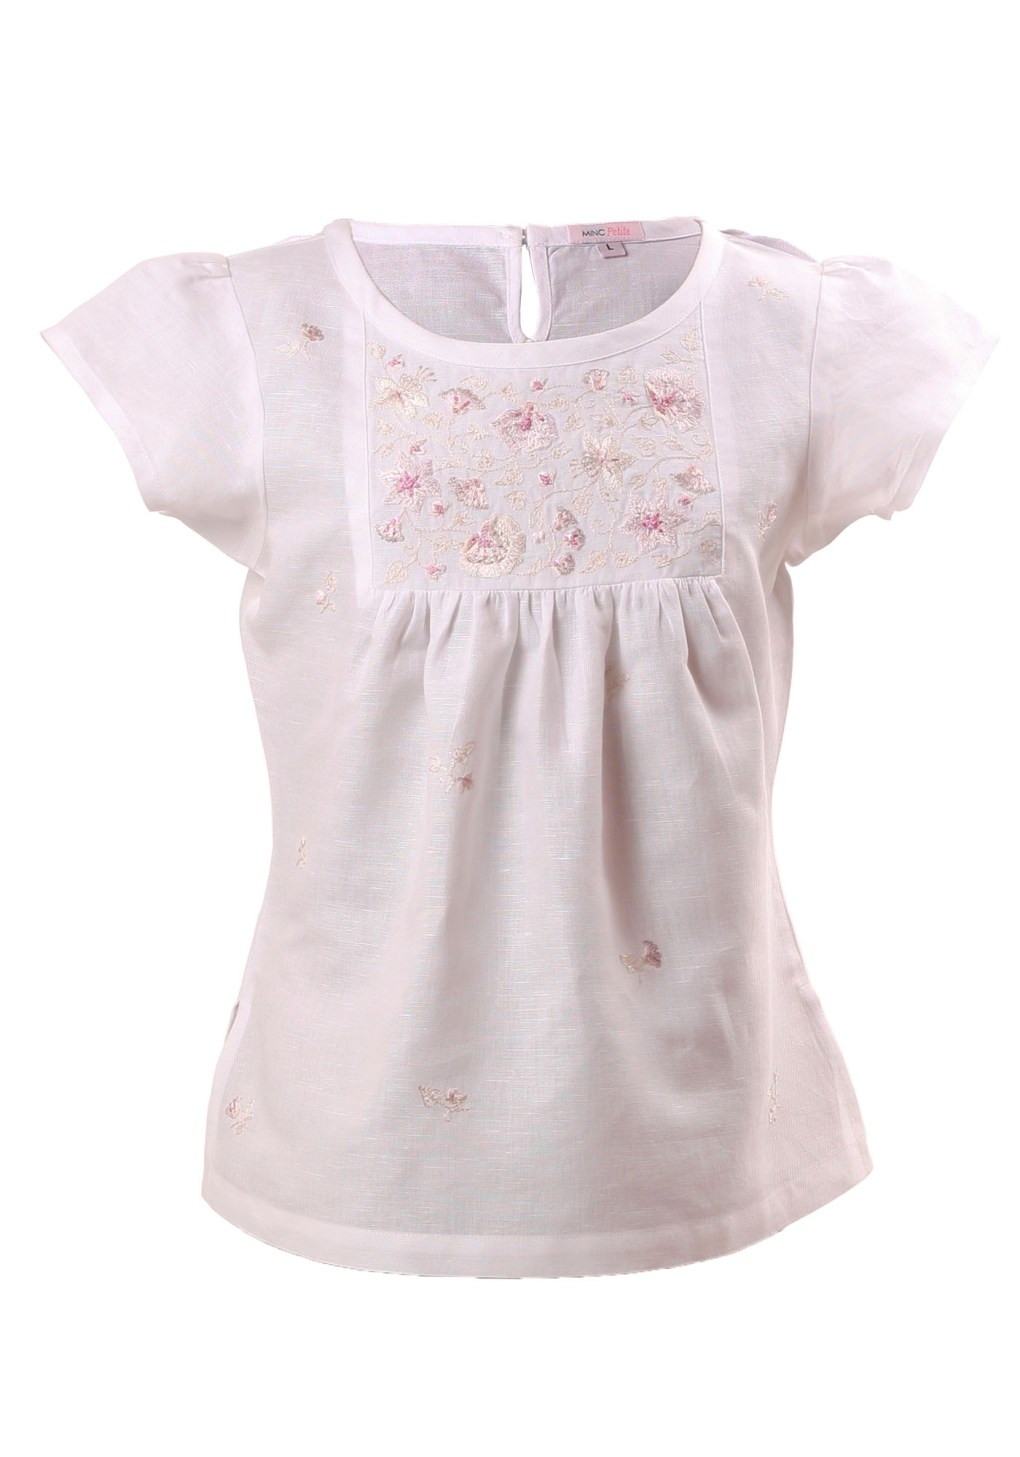 MINC Petite Floral Embroidered Girls Top in White Cotton Linen